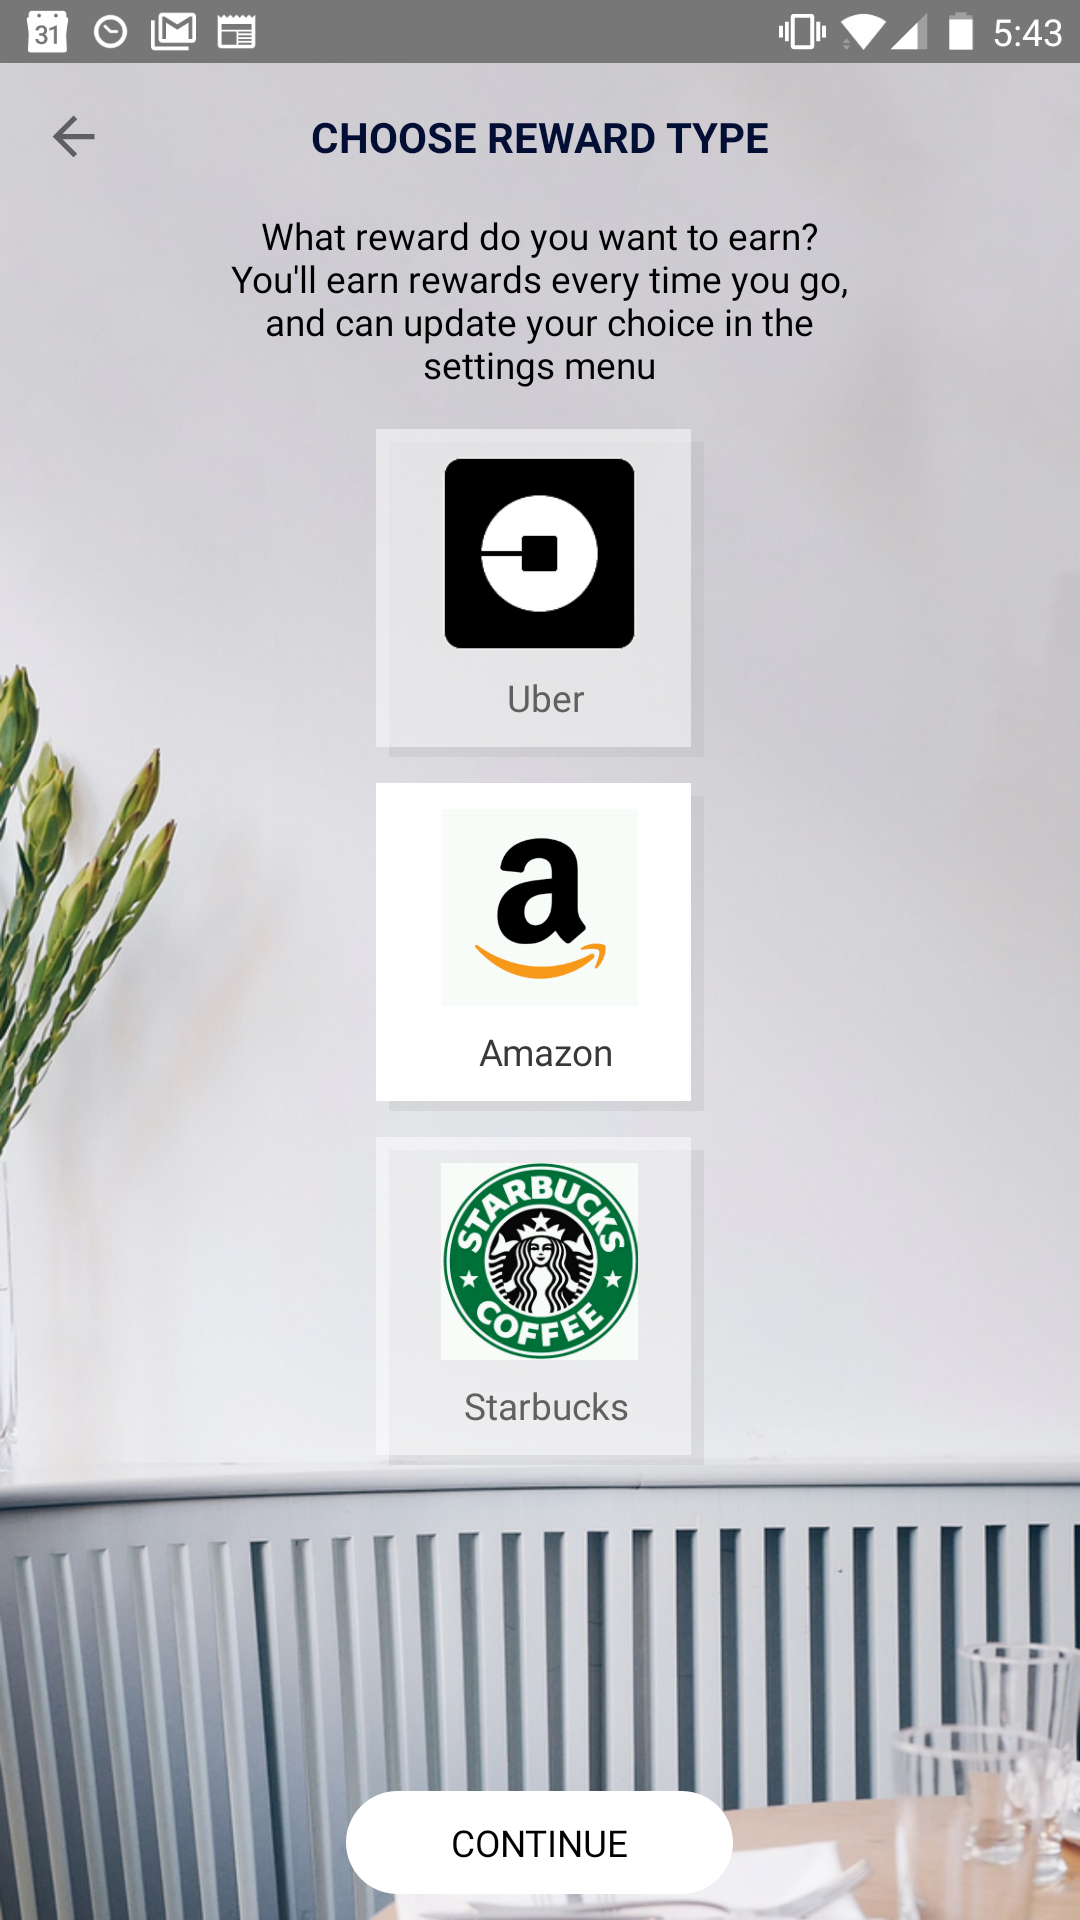 select the gift card type